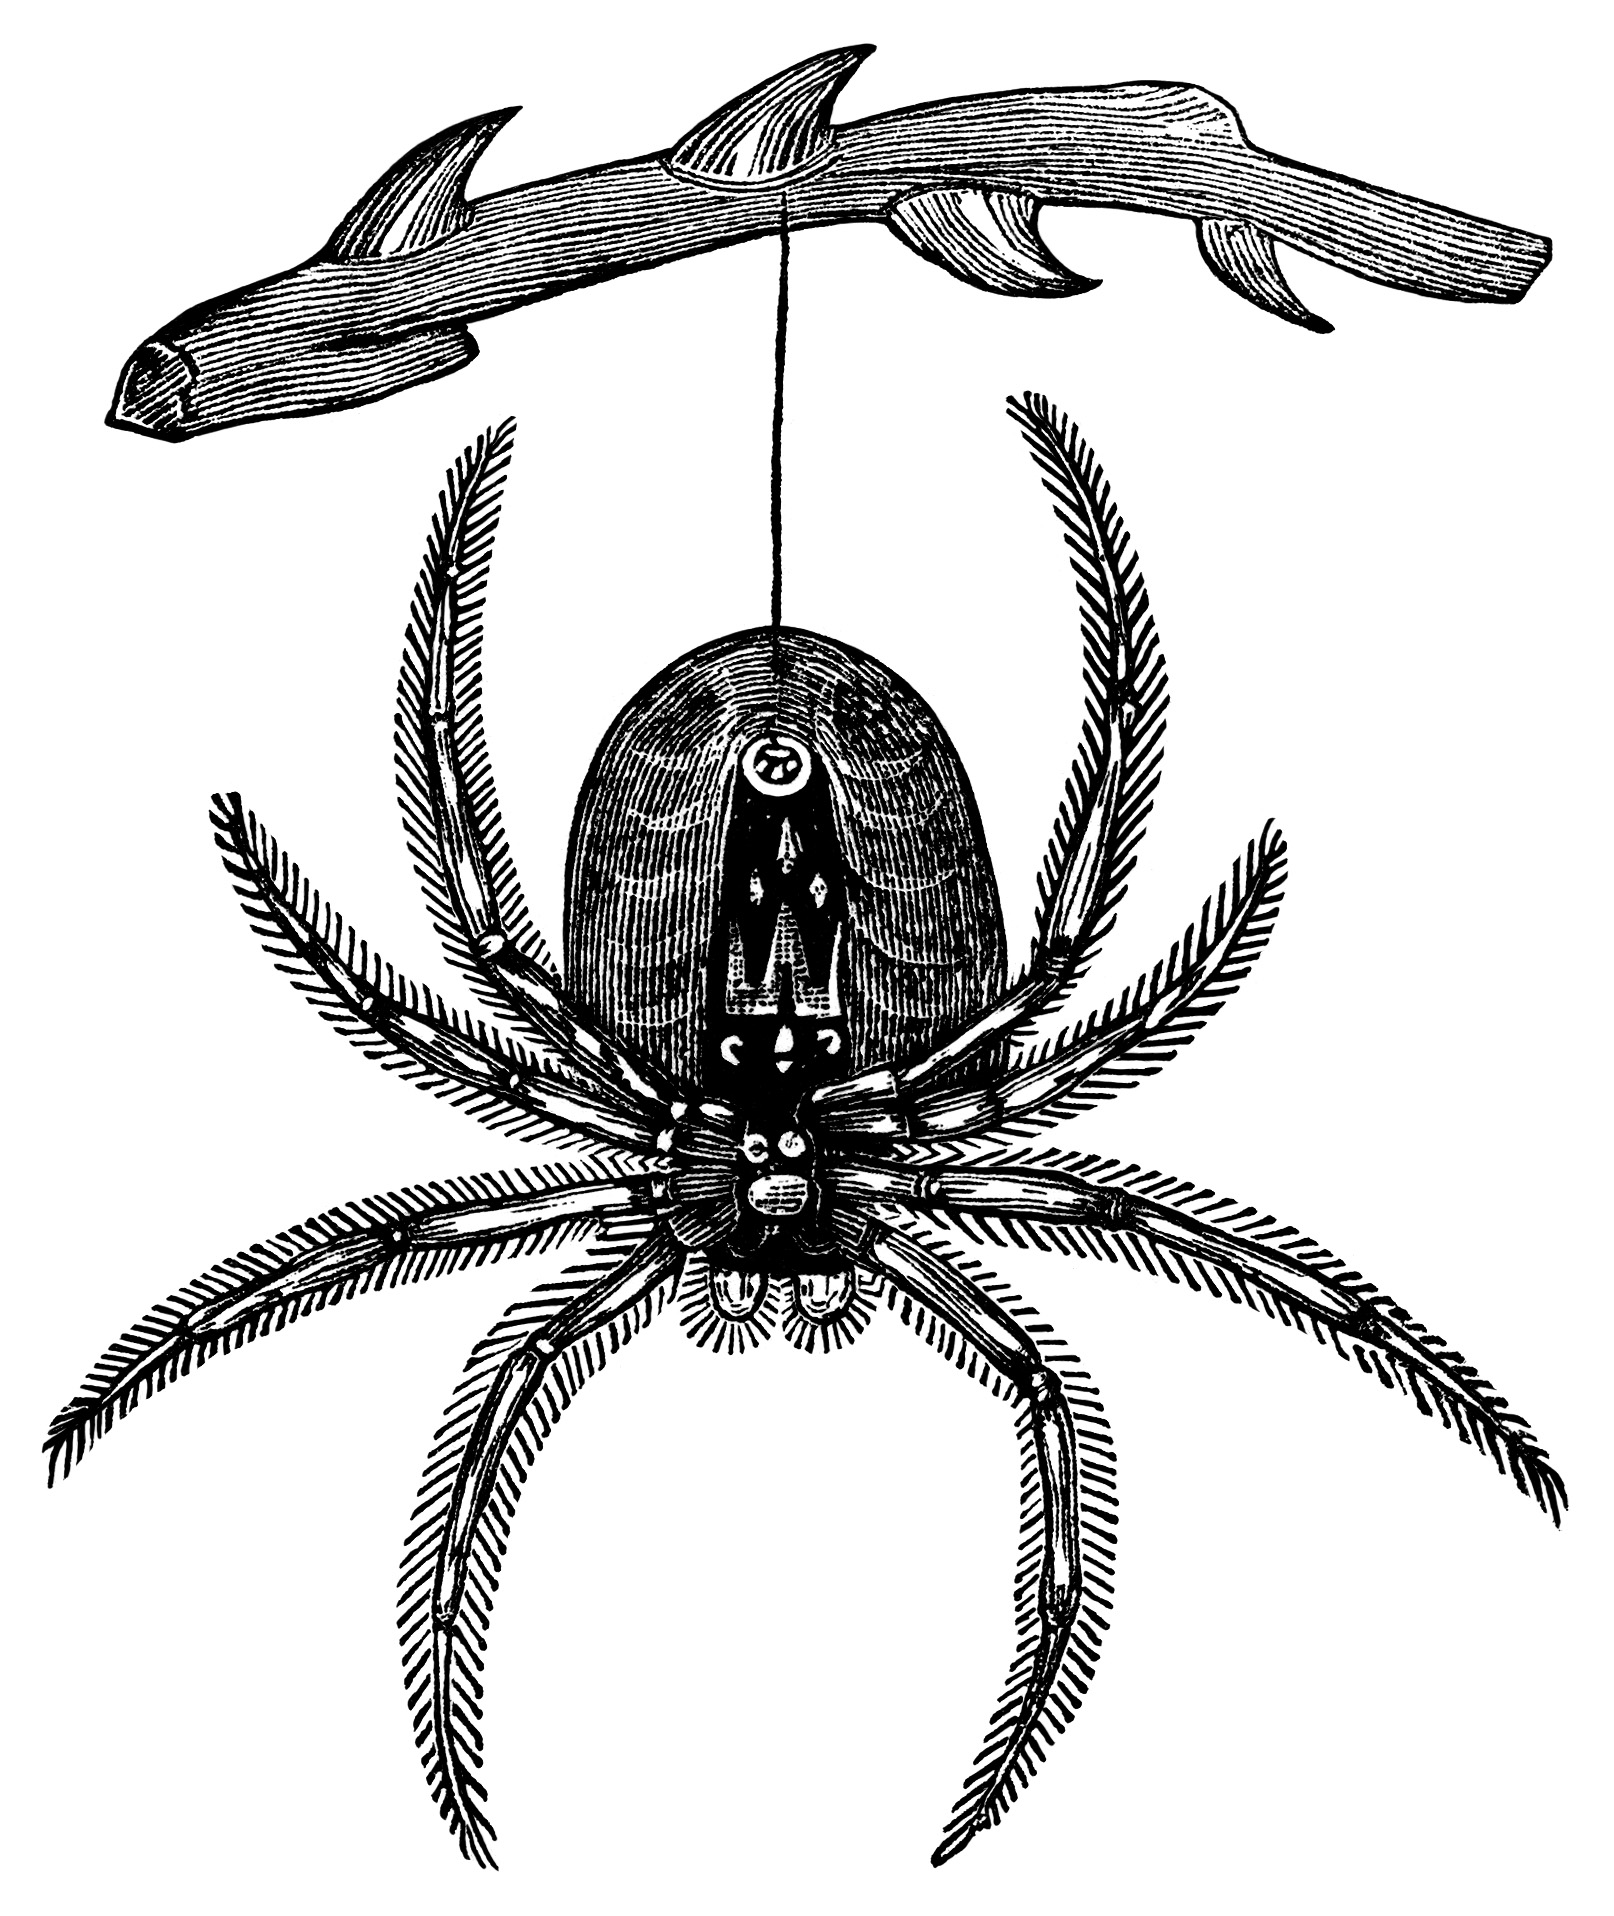 Hanging Spider ~ Free Vintage Clip Art - Old Design Shop Blog